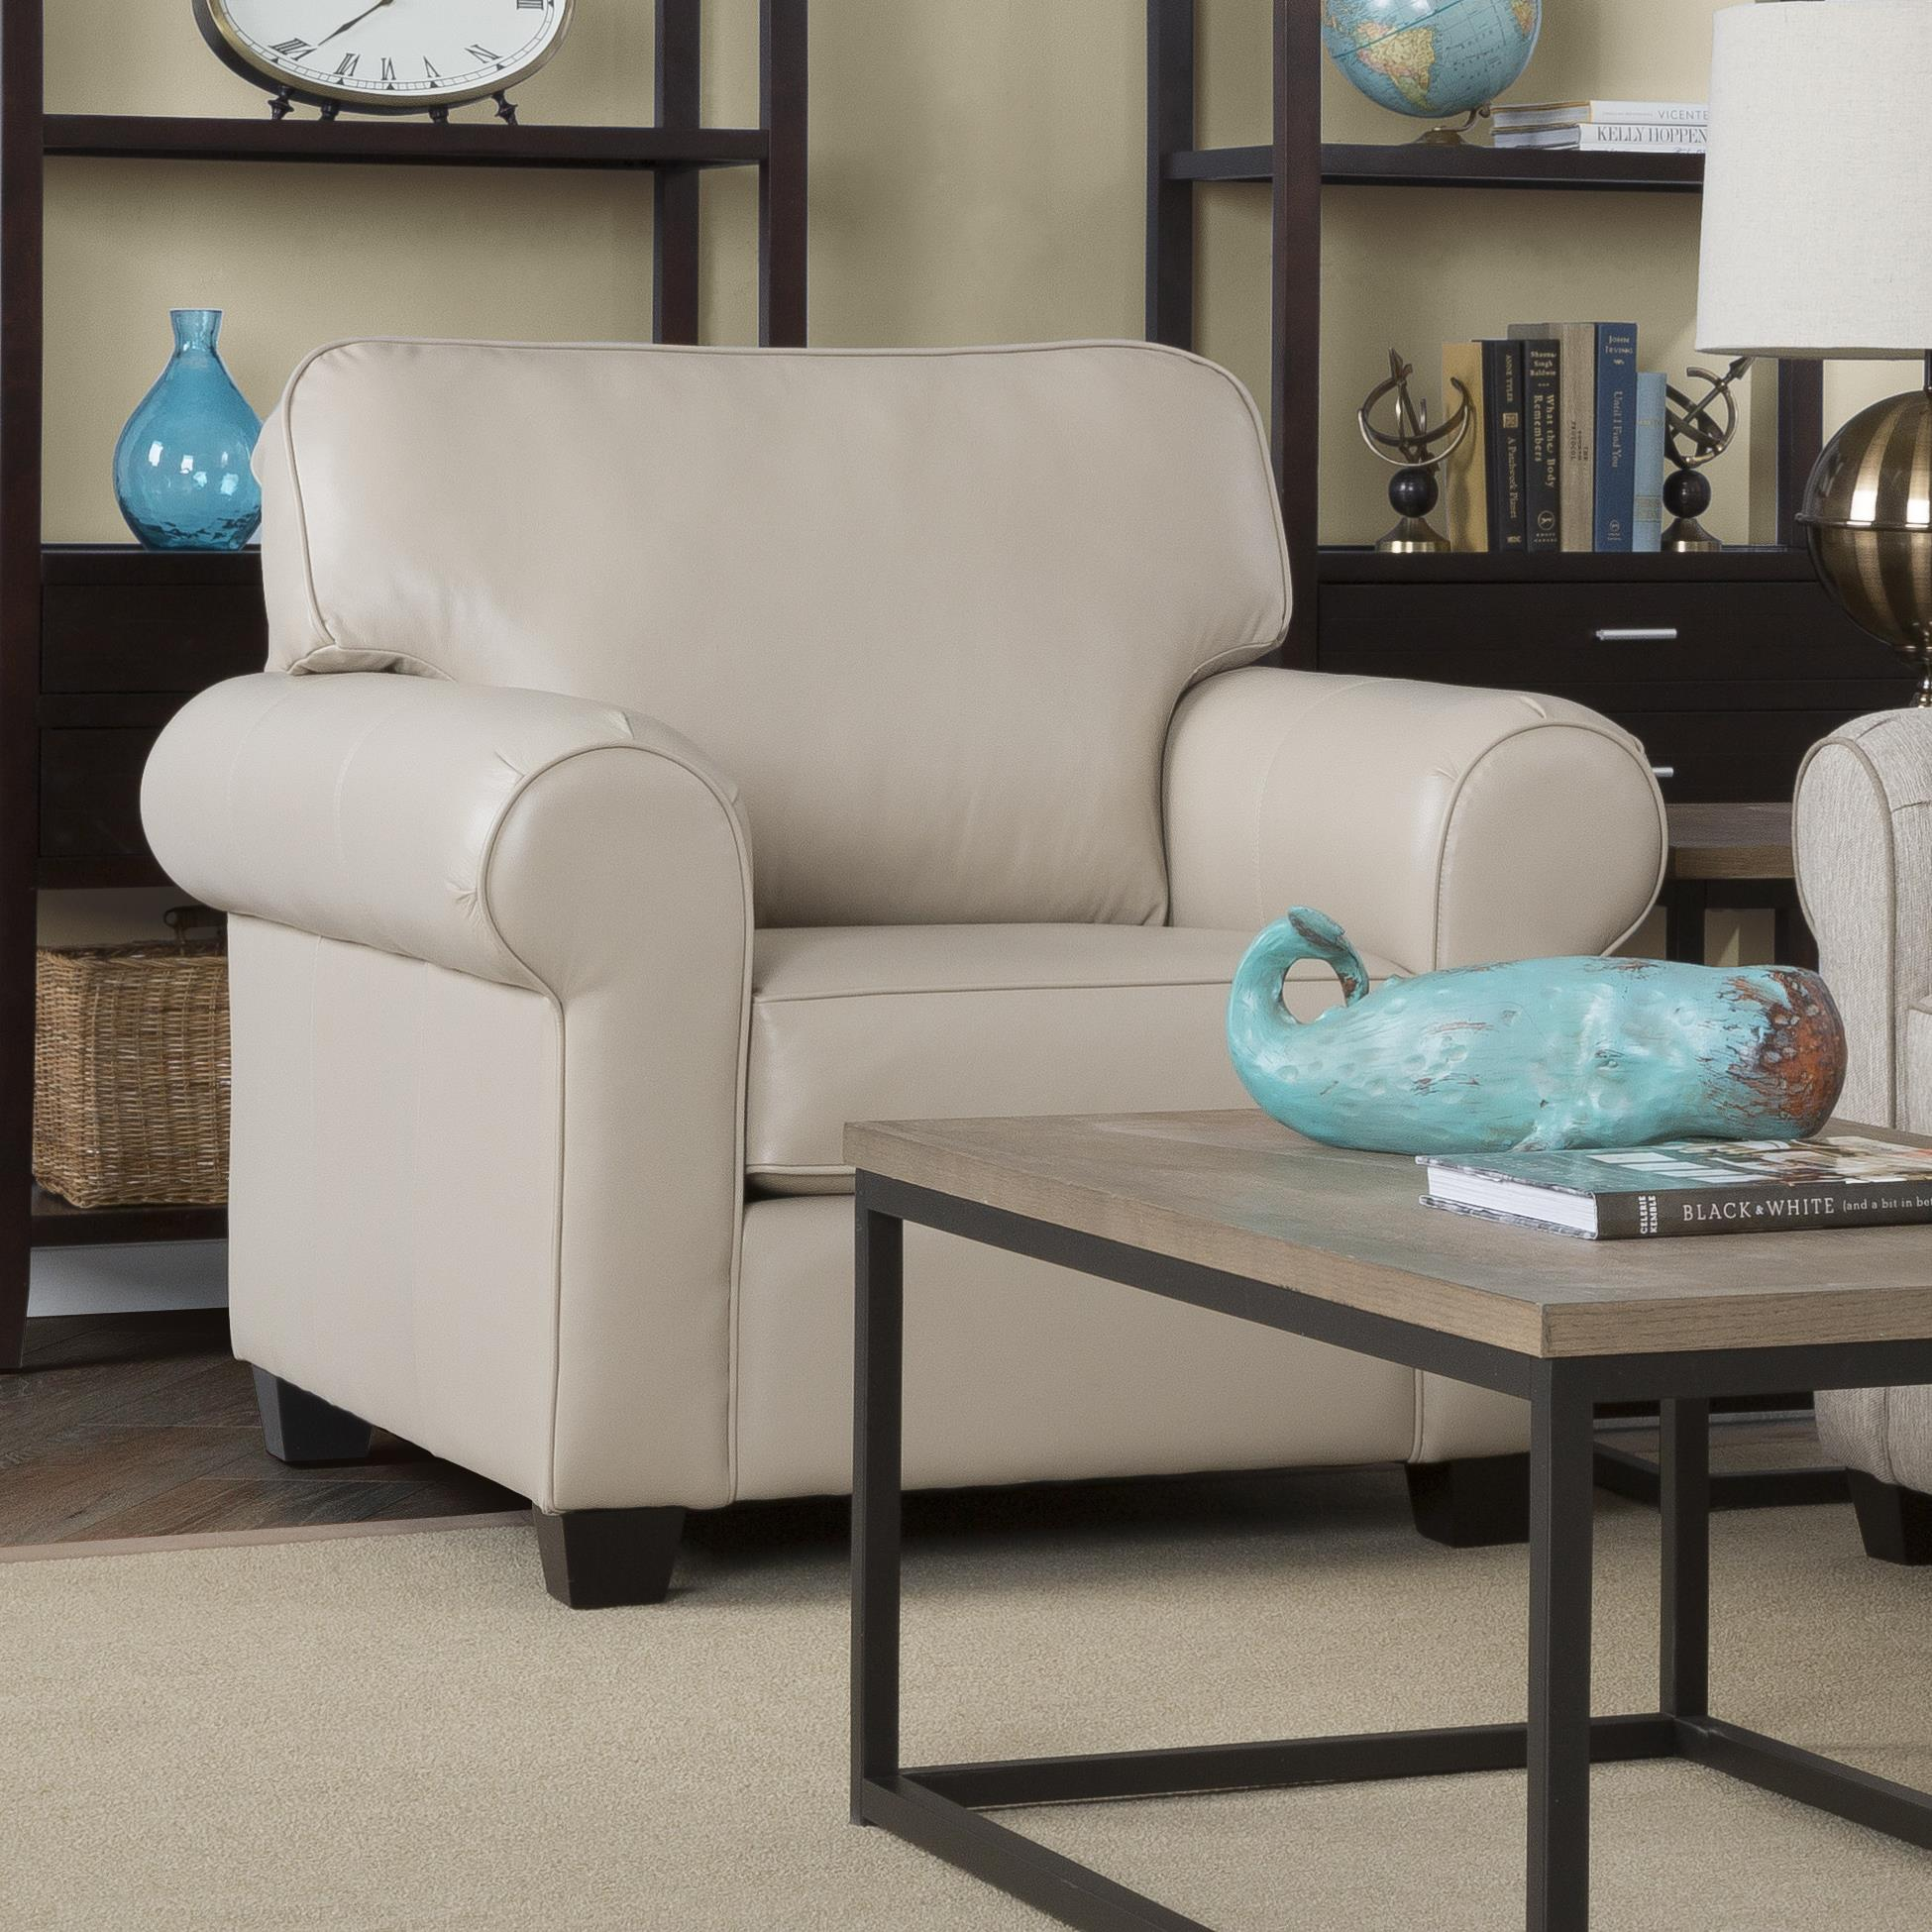 3179 Chair by Decor-Rest at Johnny Janosik